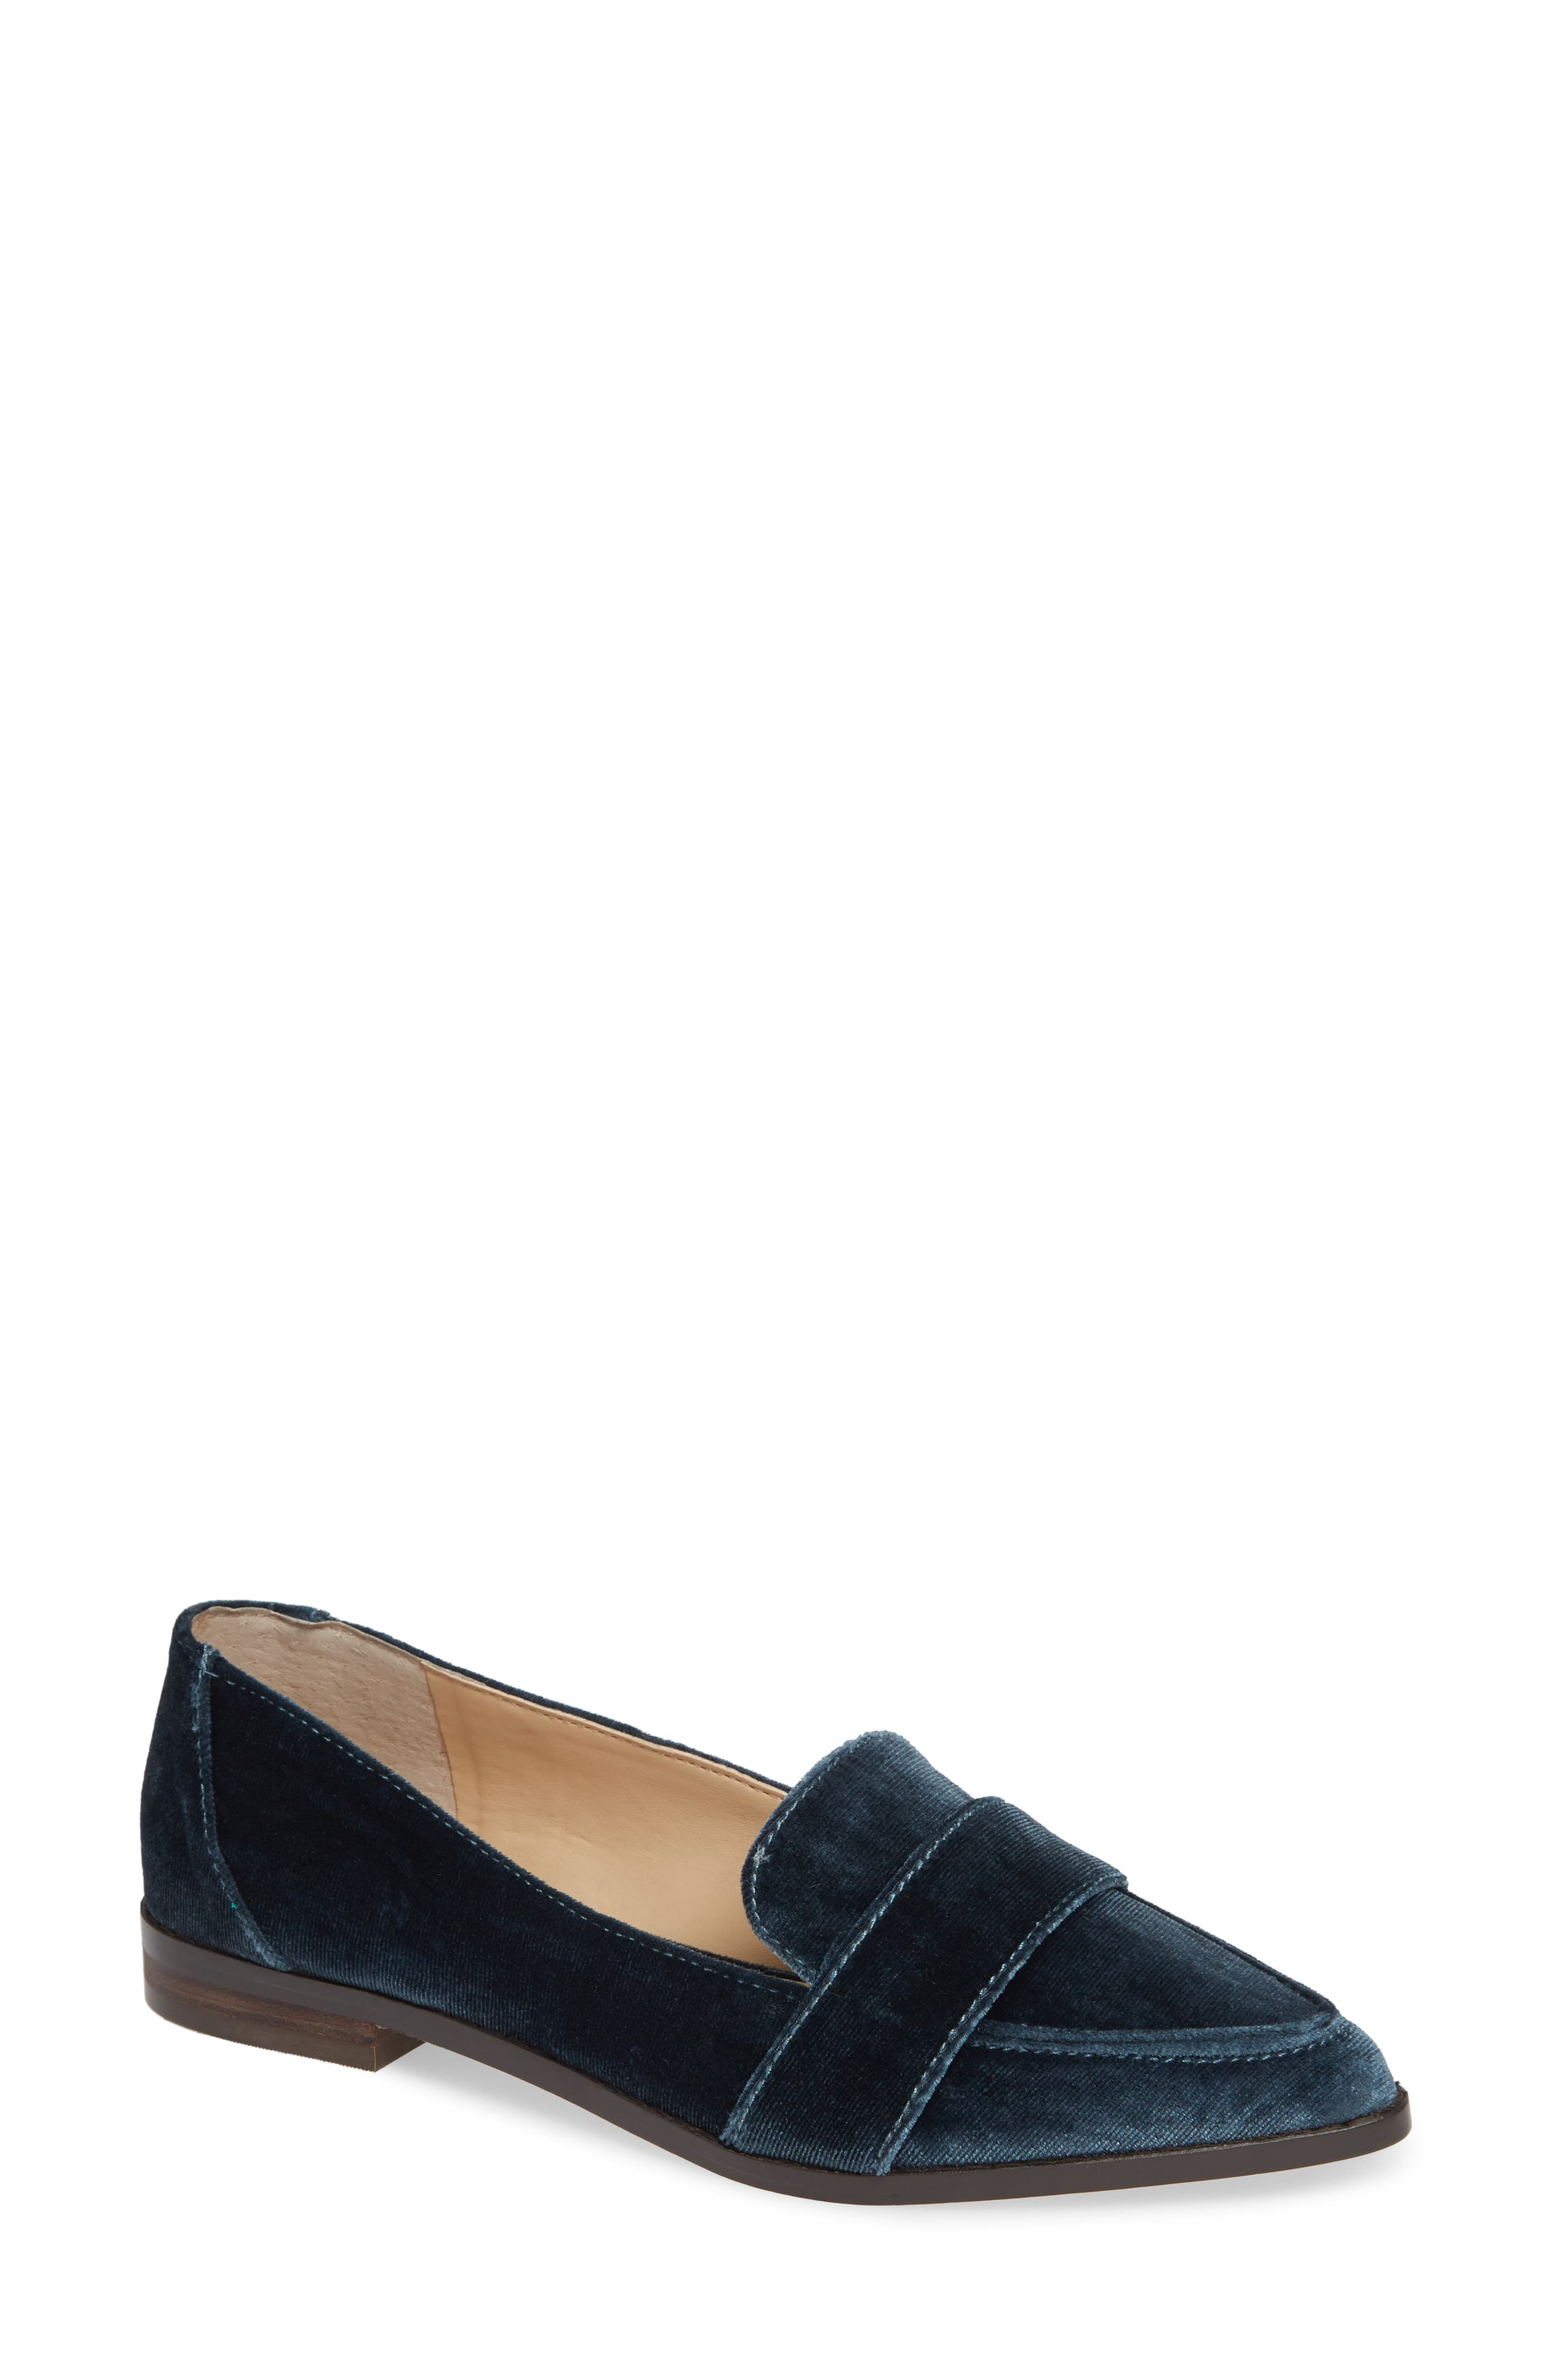 Edie Pointy Toe Loafer,                         Main,                         color,